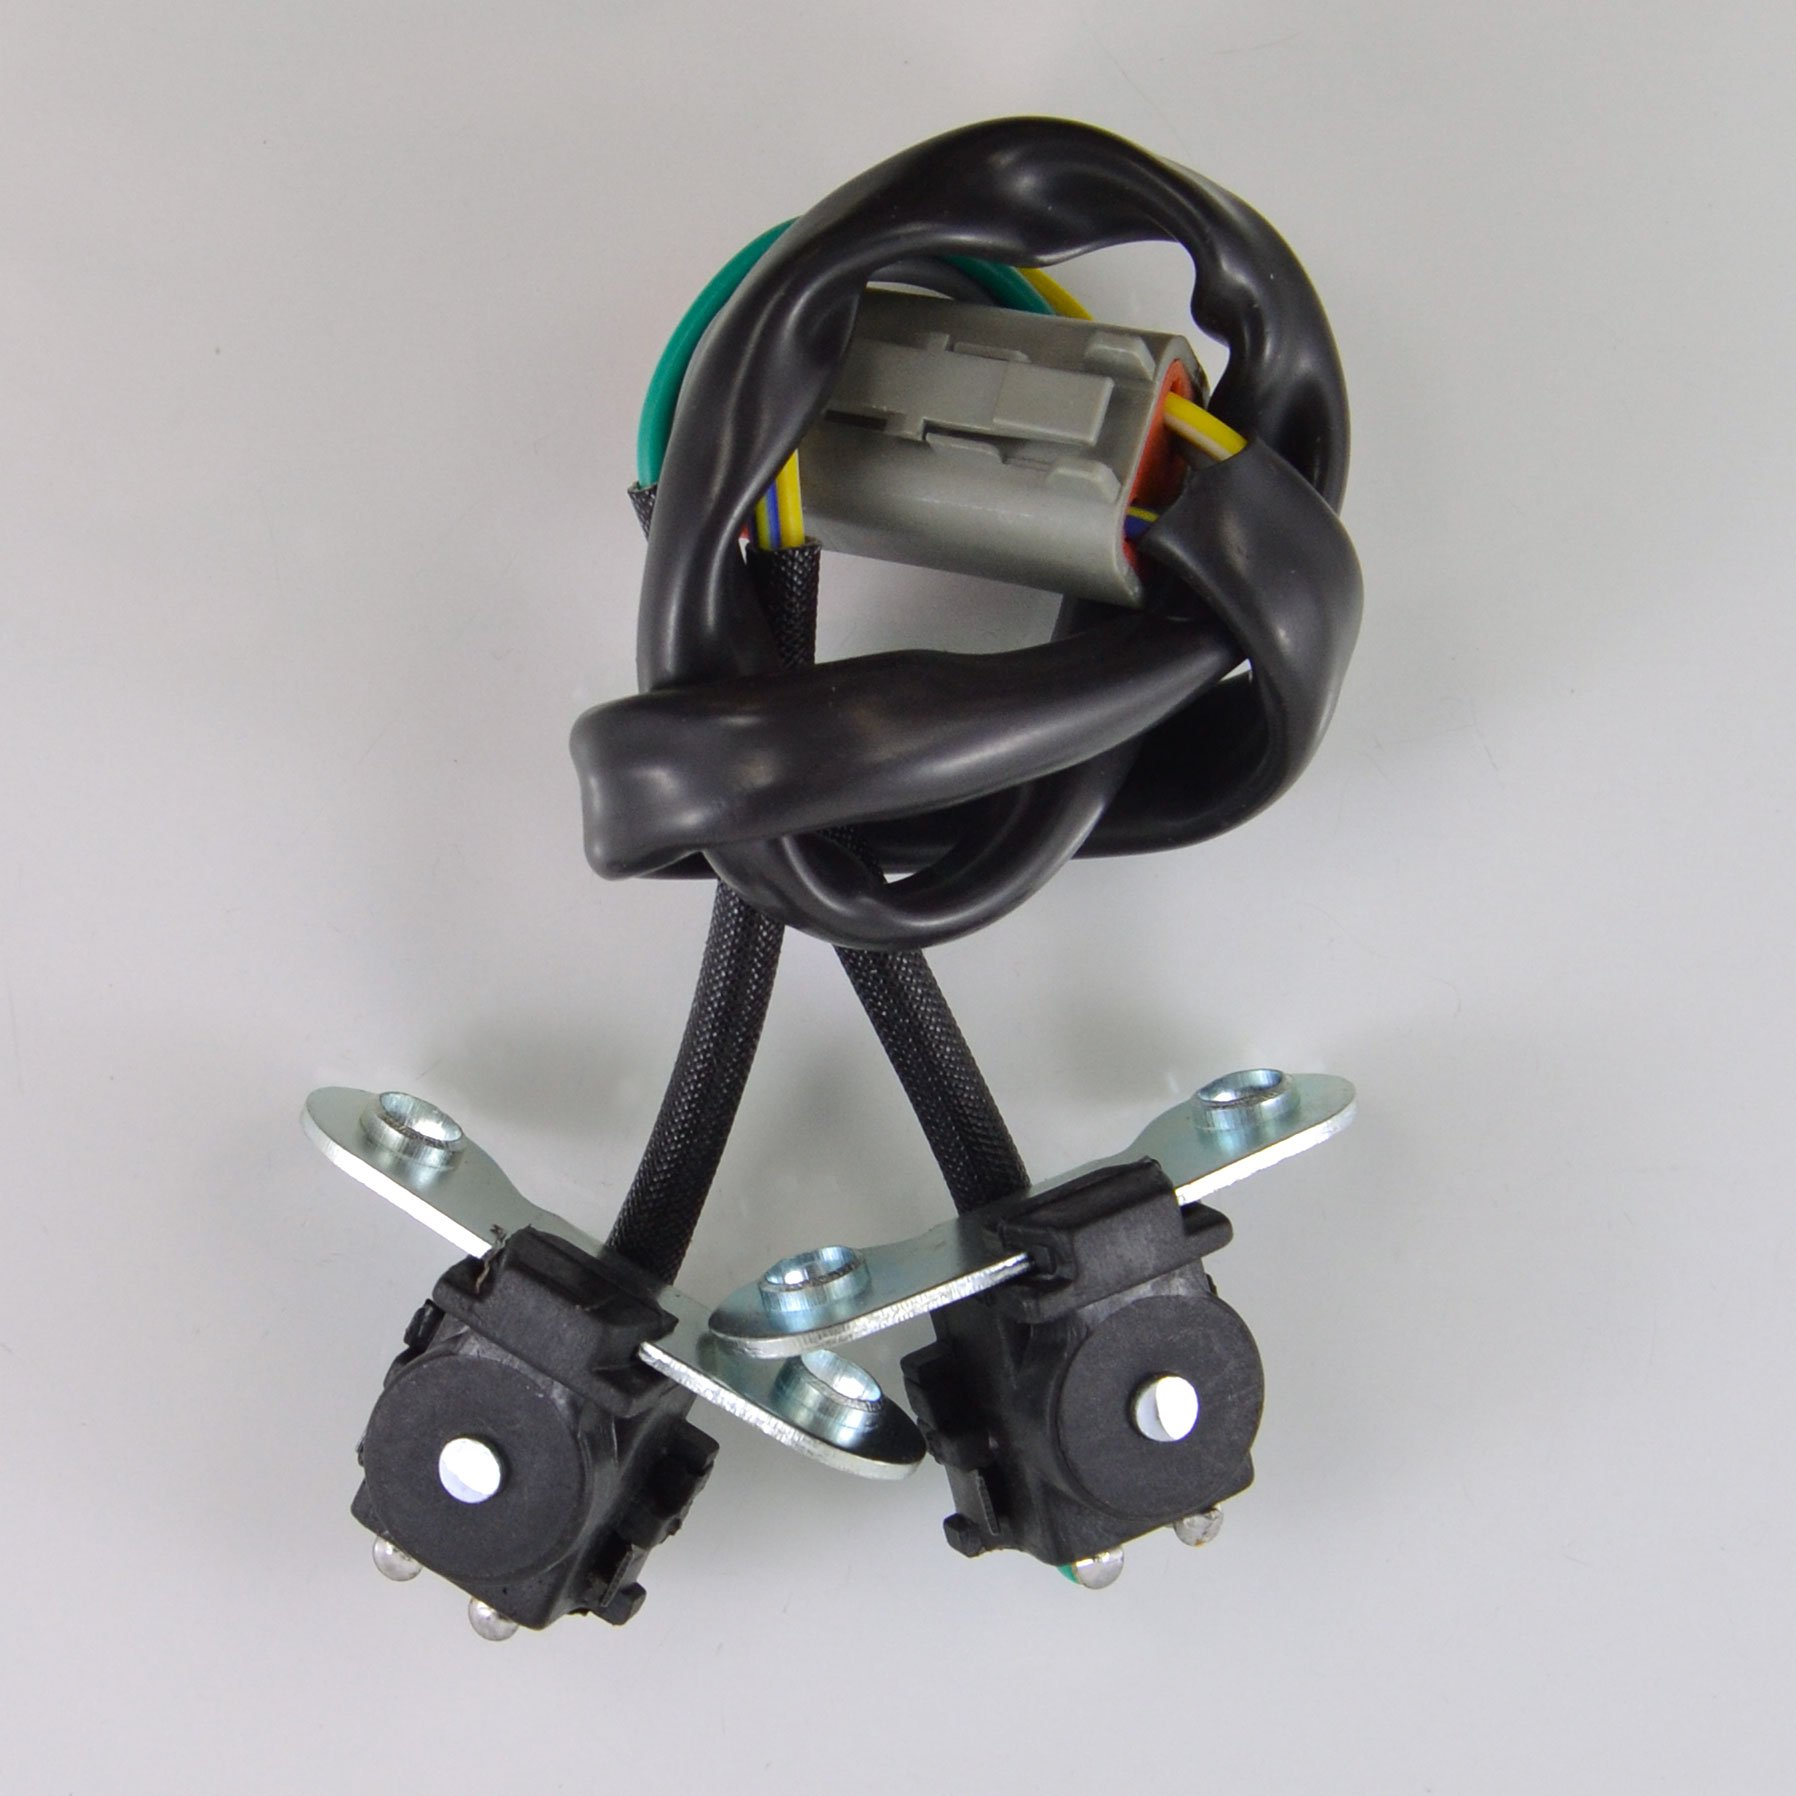 Pick Up Pulsar Coil For Ski Doo Adrenaline/Grand Touring Sport 500 600 700 / Mach 1 700 / Mach Z 800 / MX Z 500 600 700 Sport/Renegade / Summit 600 700 800 / Summit 800 HO / 1999-2015 by Mister Electrical (Image #2)